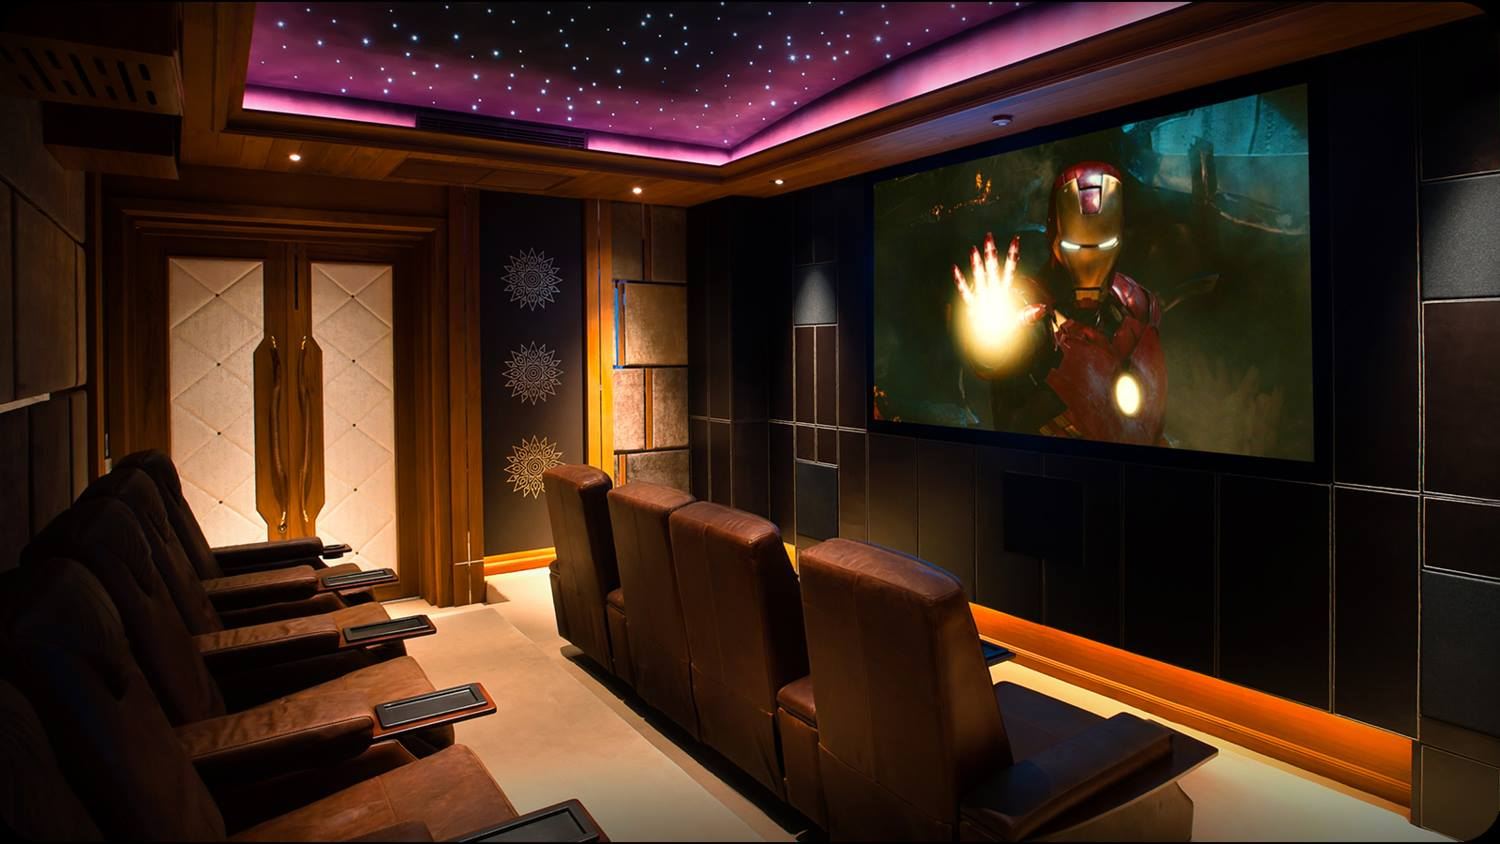 A Starfield ceiling in a home cinema (Phuket)